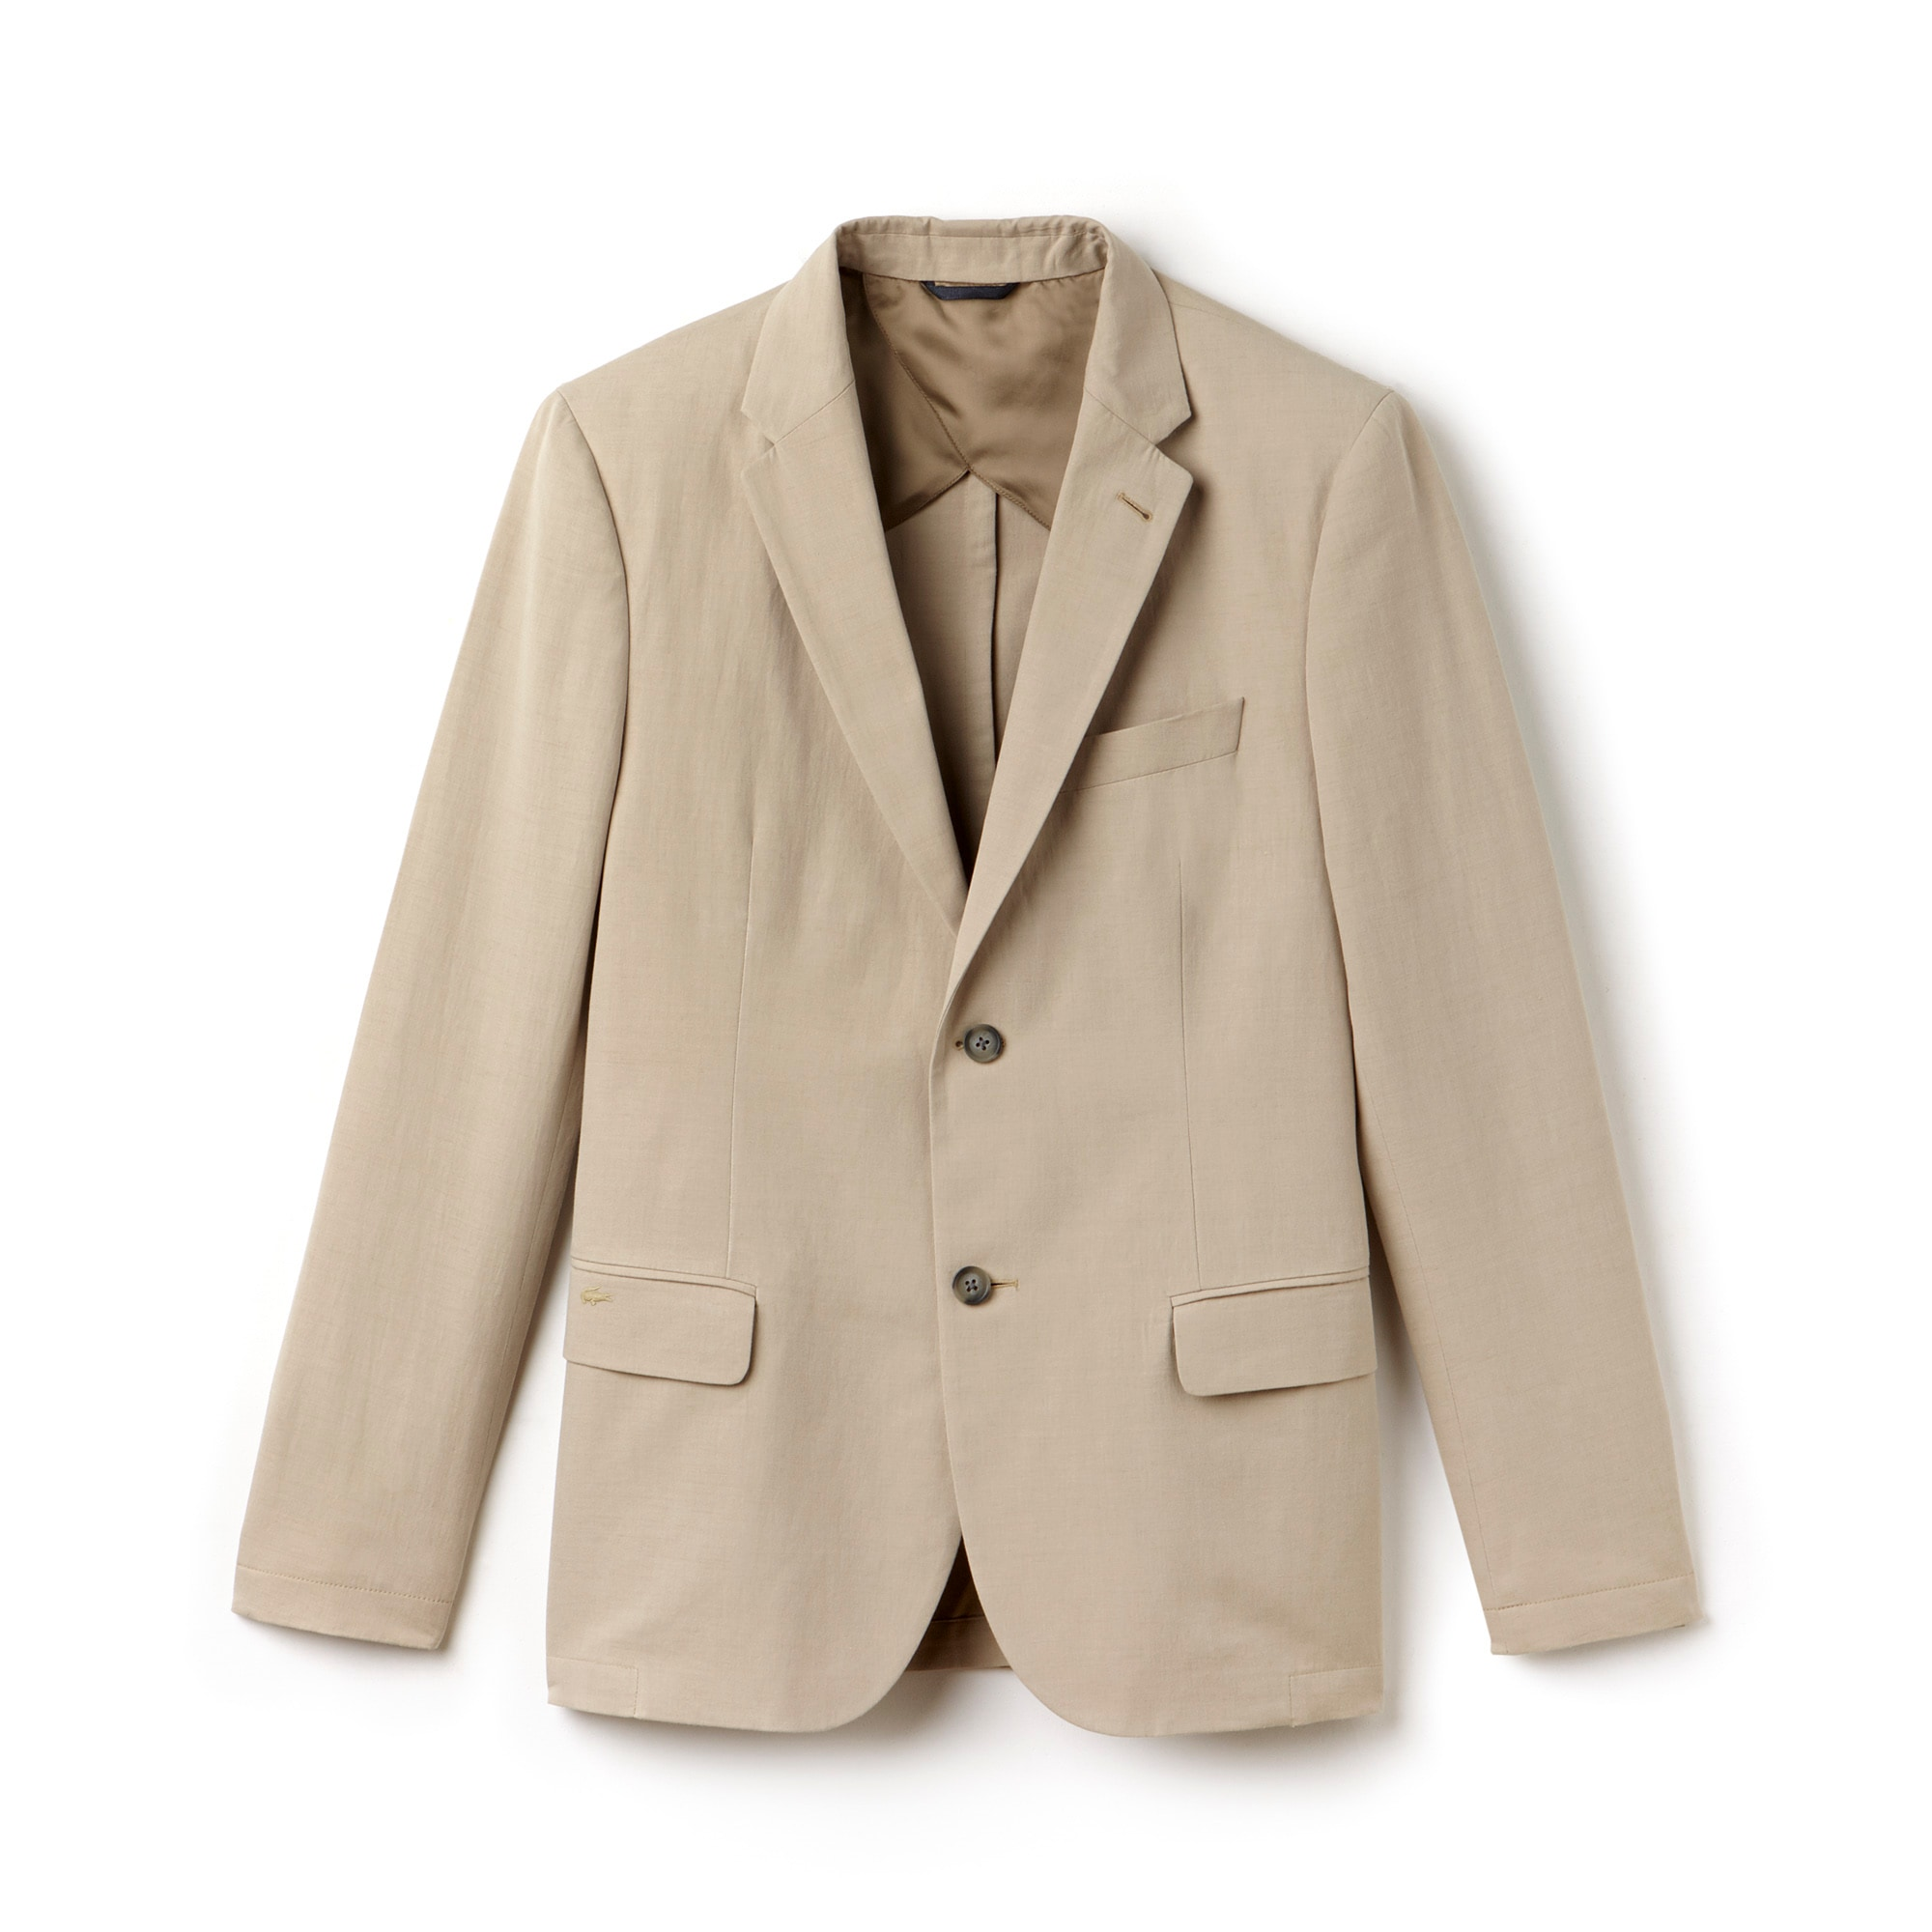 Men's Bicolor Cotton Linen Blend Suit Jacket